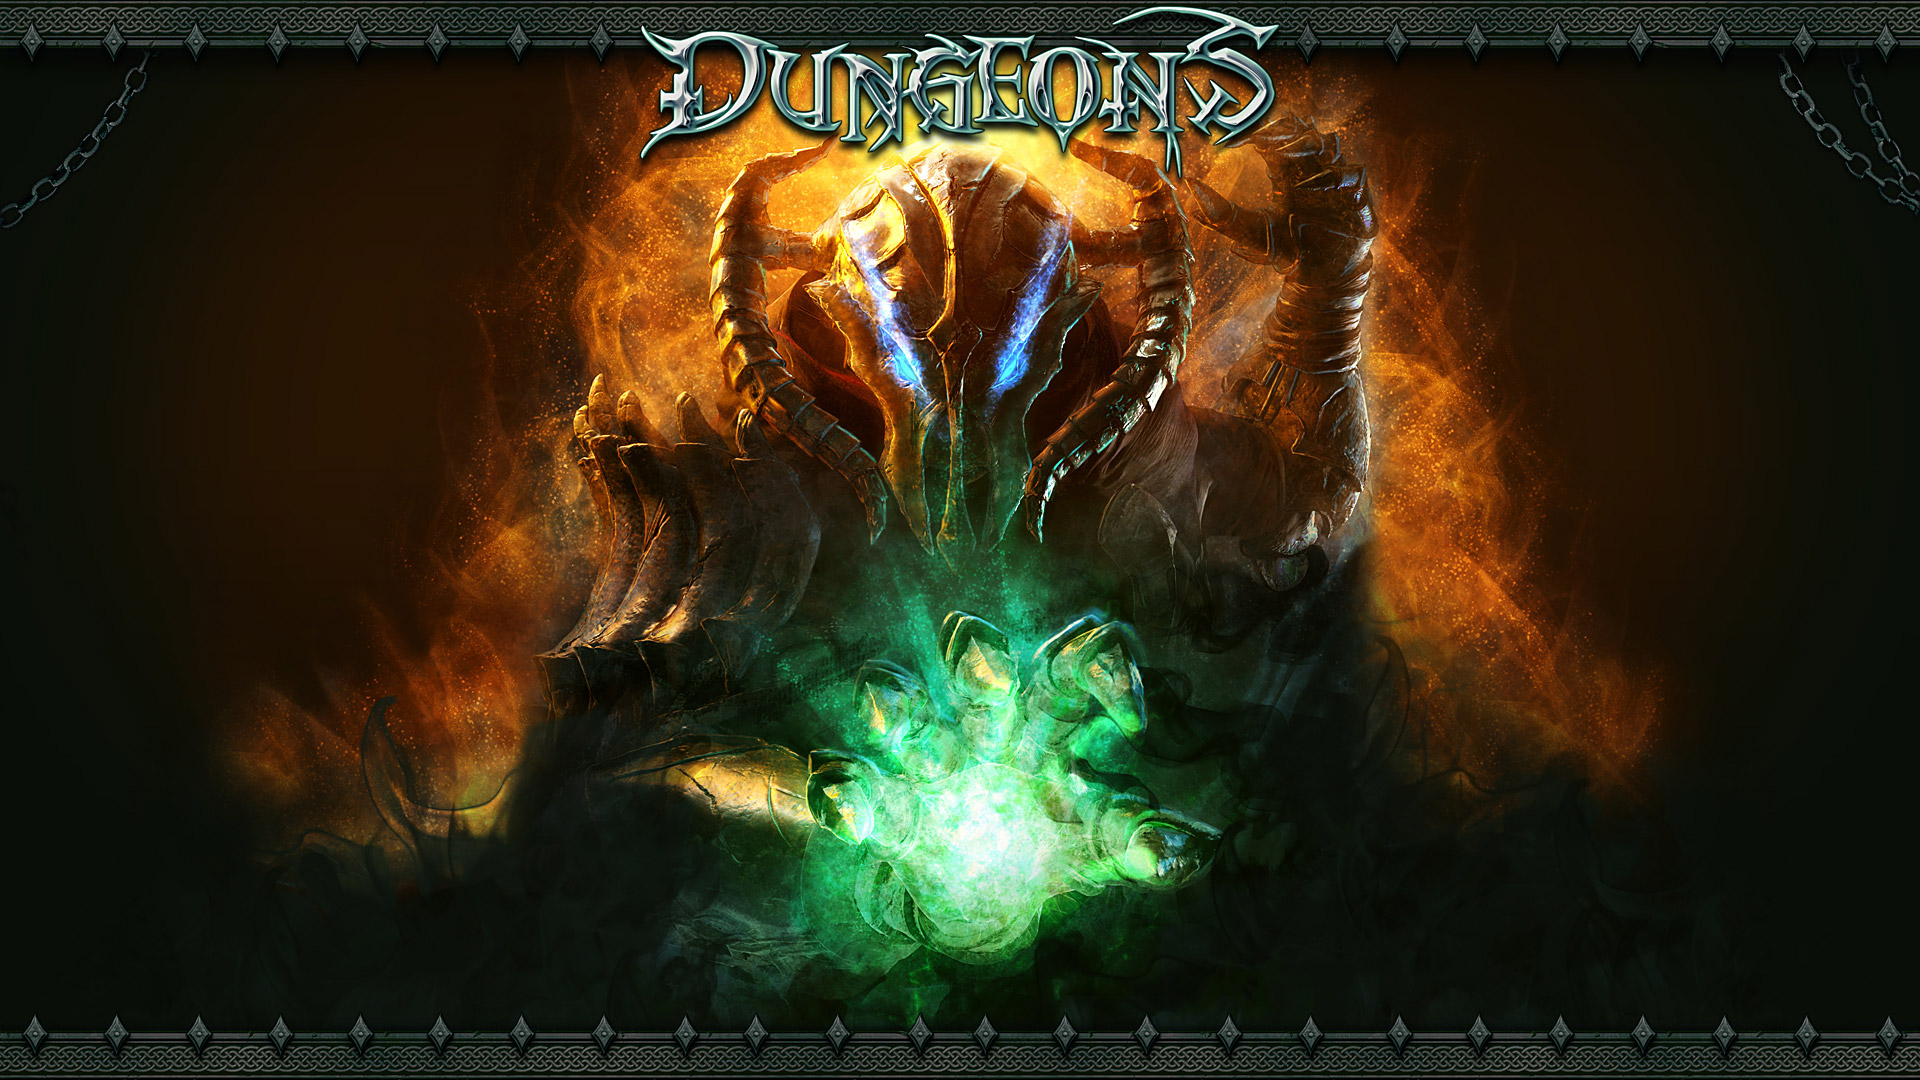 Free Dungeons Wallpaper in 1920x1080